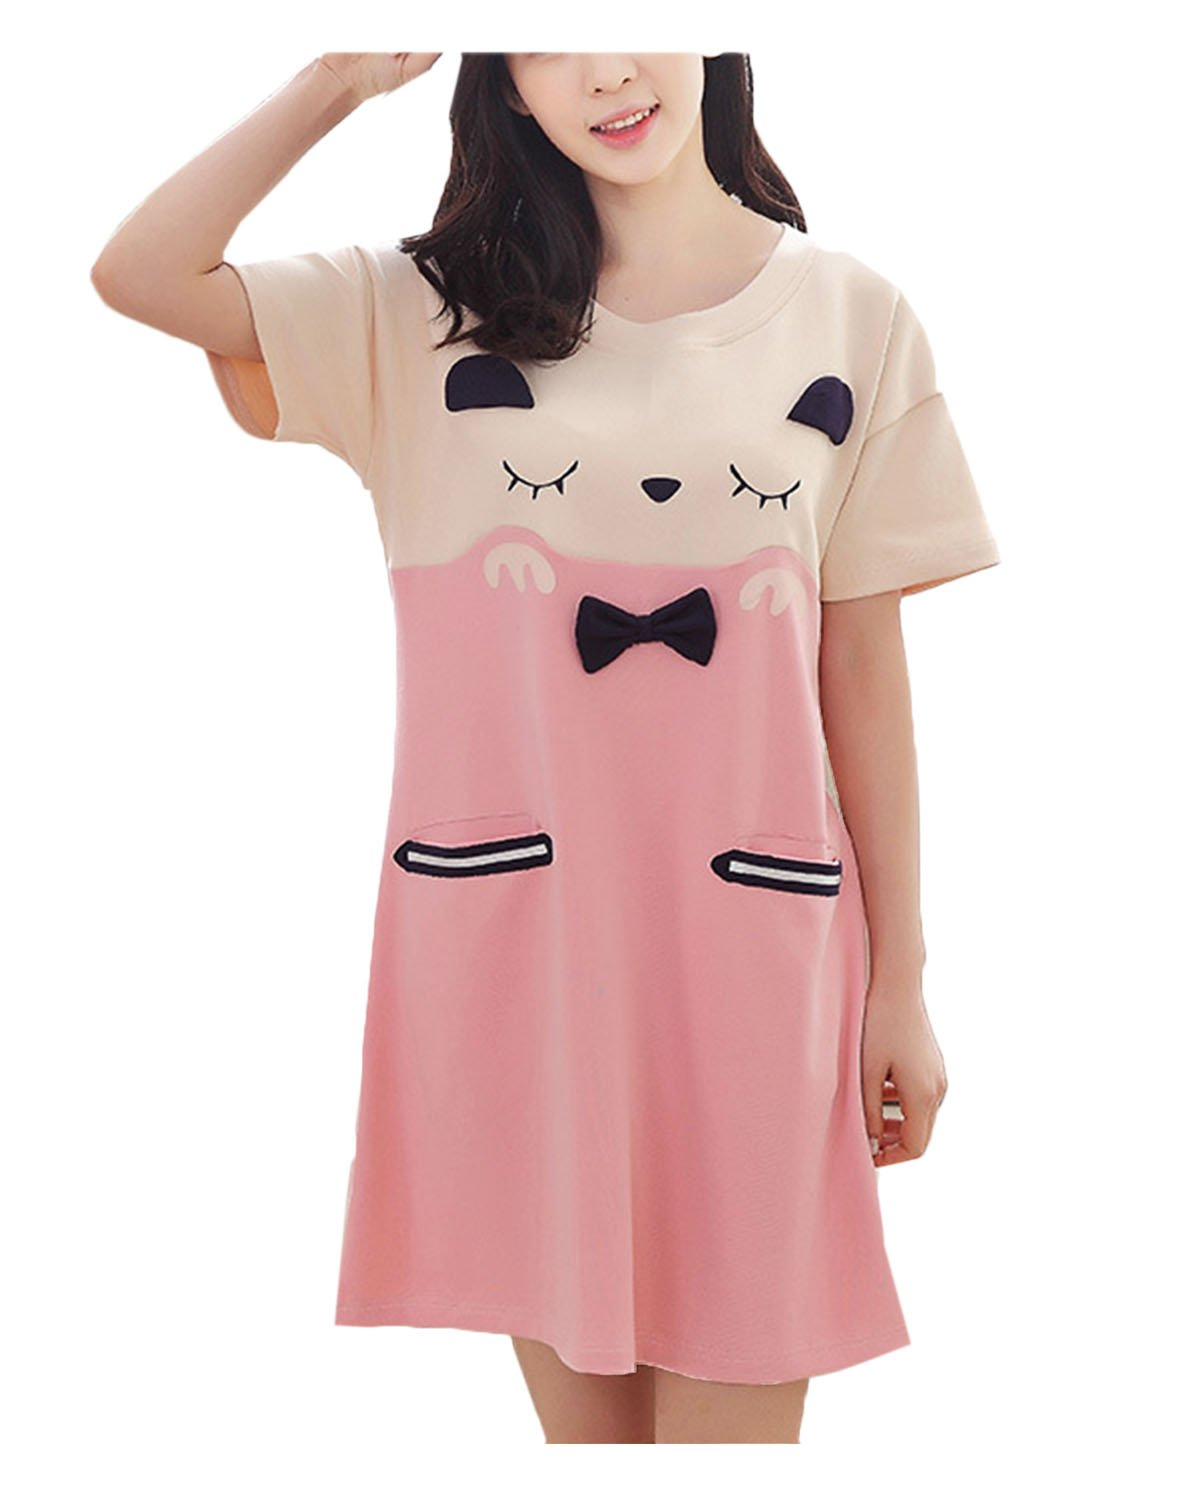 Big Girls Cute Cartoon Nightgown Pajamas Homewear